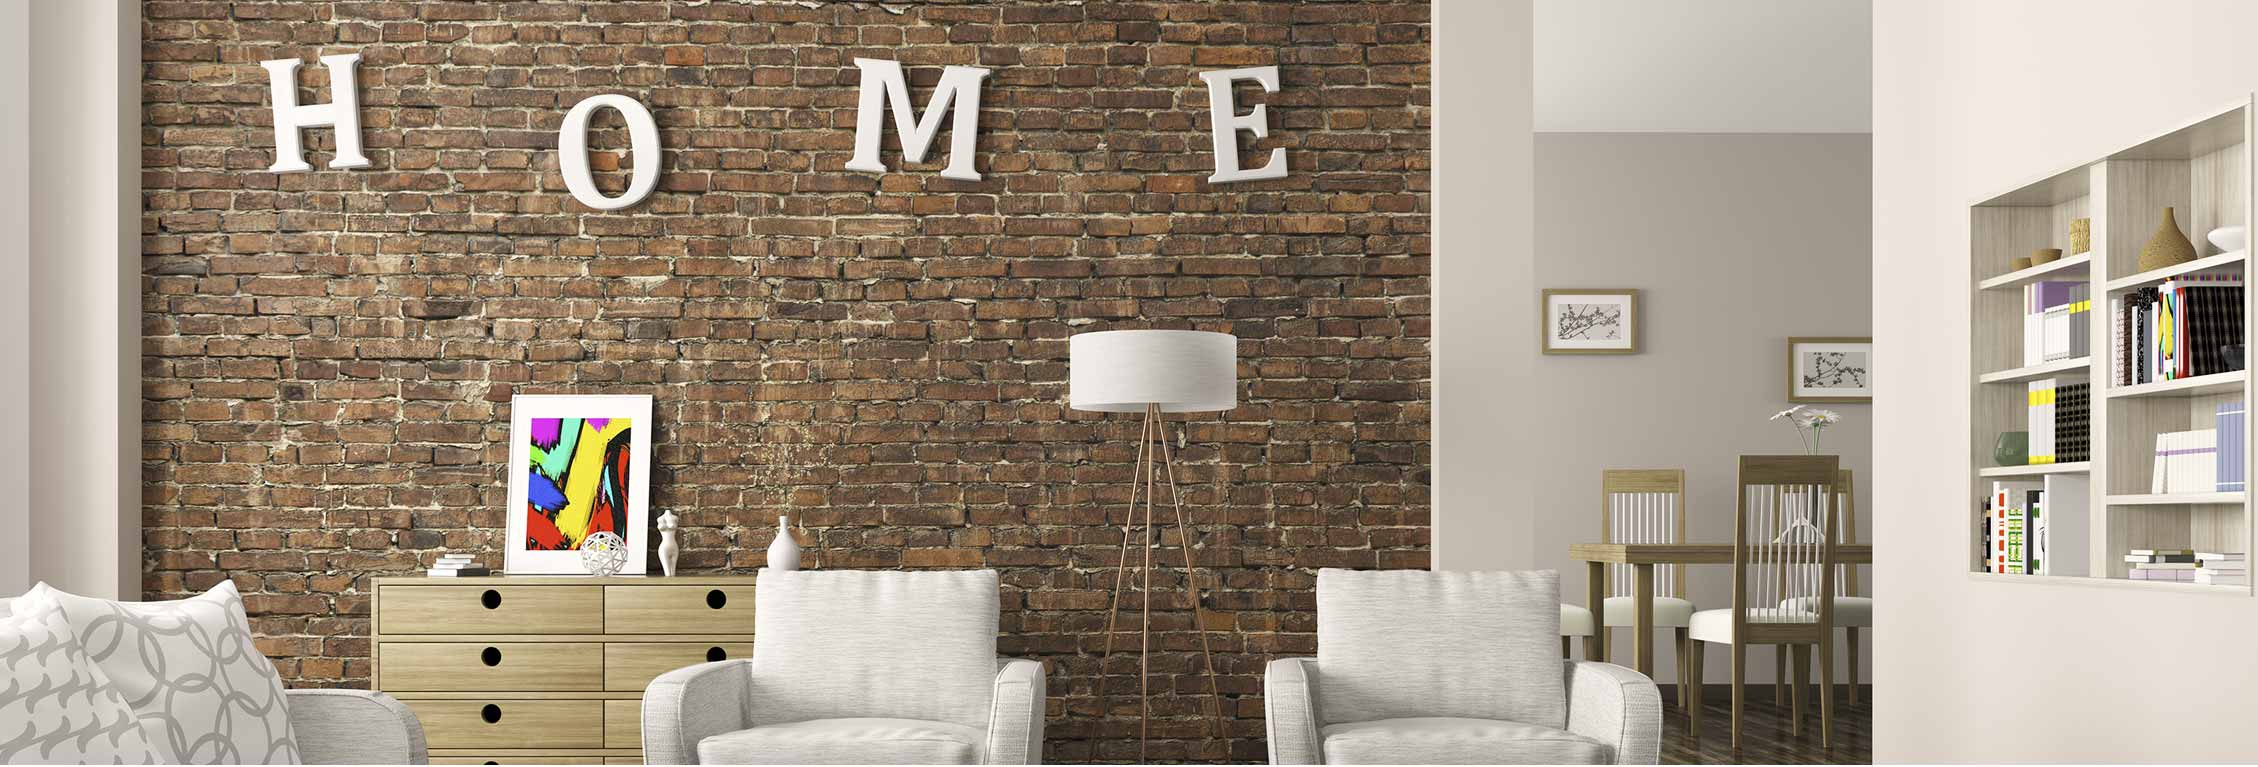 How To Install Brick Veneer Home Decorating Painting Advice